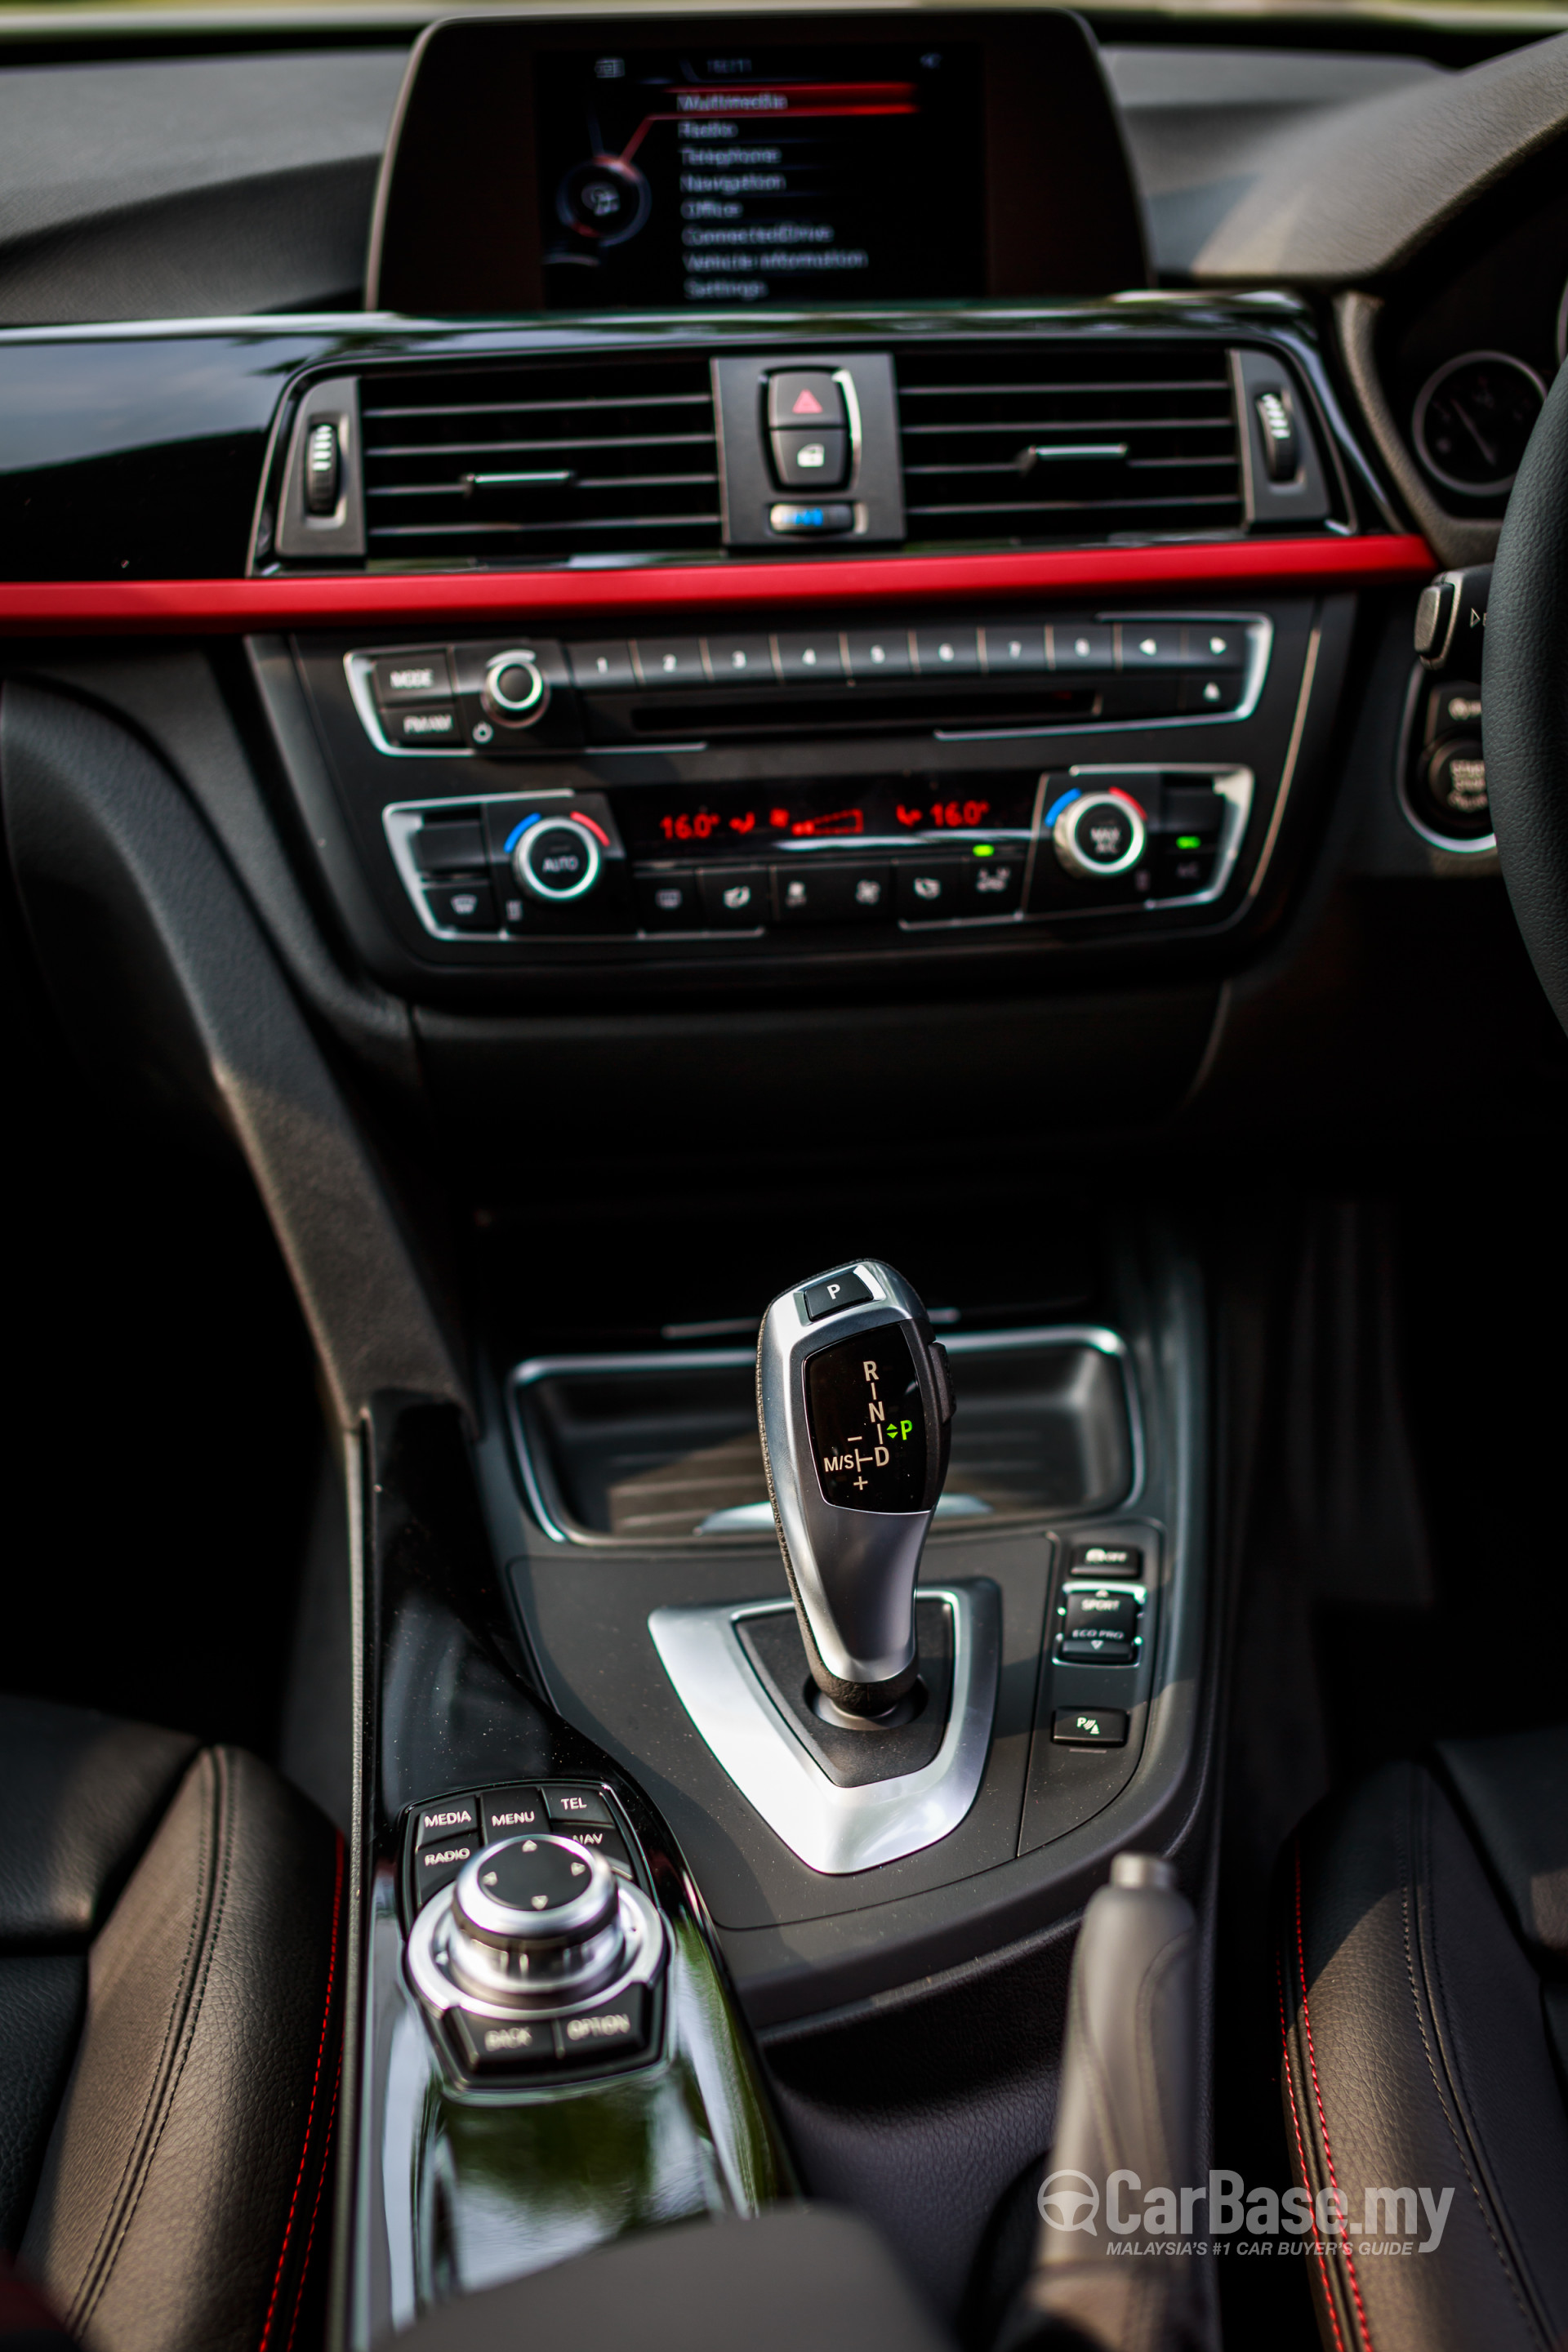 Bmw 3 Series F30 2012 Interior Image 16912 In Malaysia Reviews